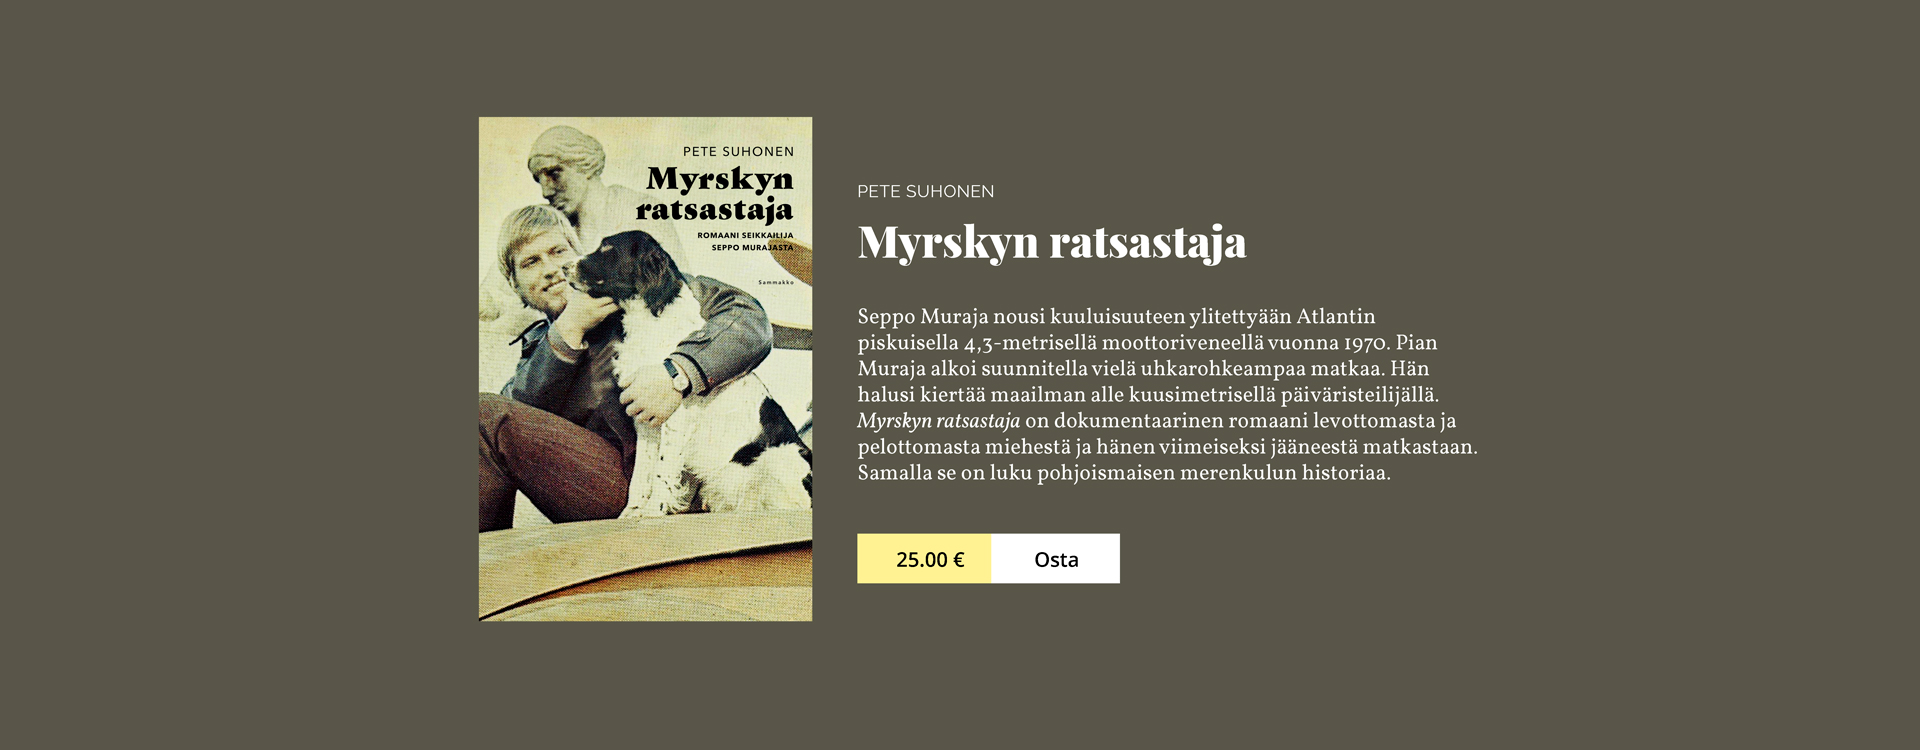 Myrskyn-ratsastaja-slidemainos